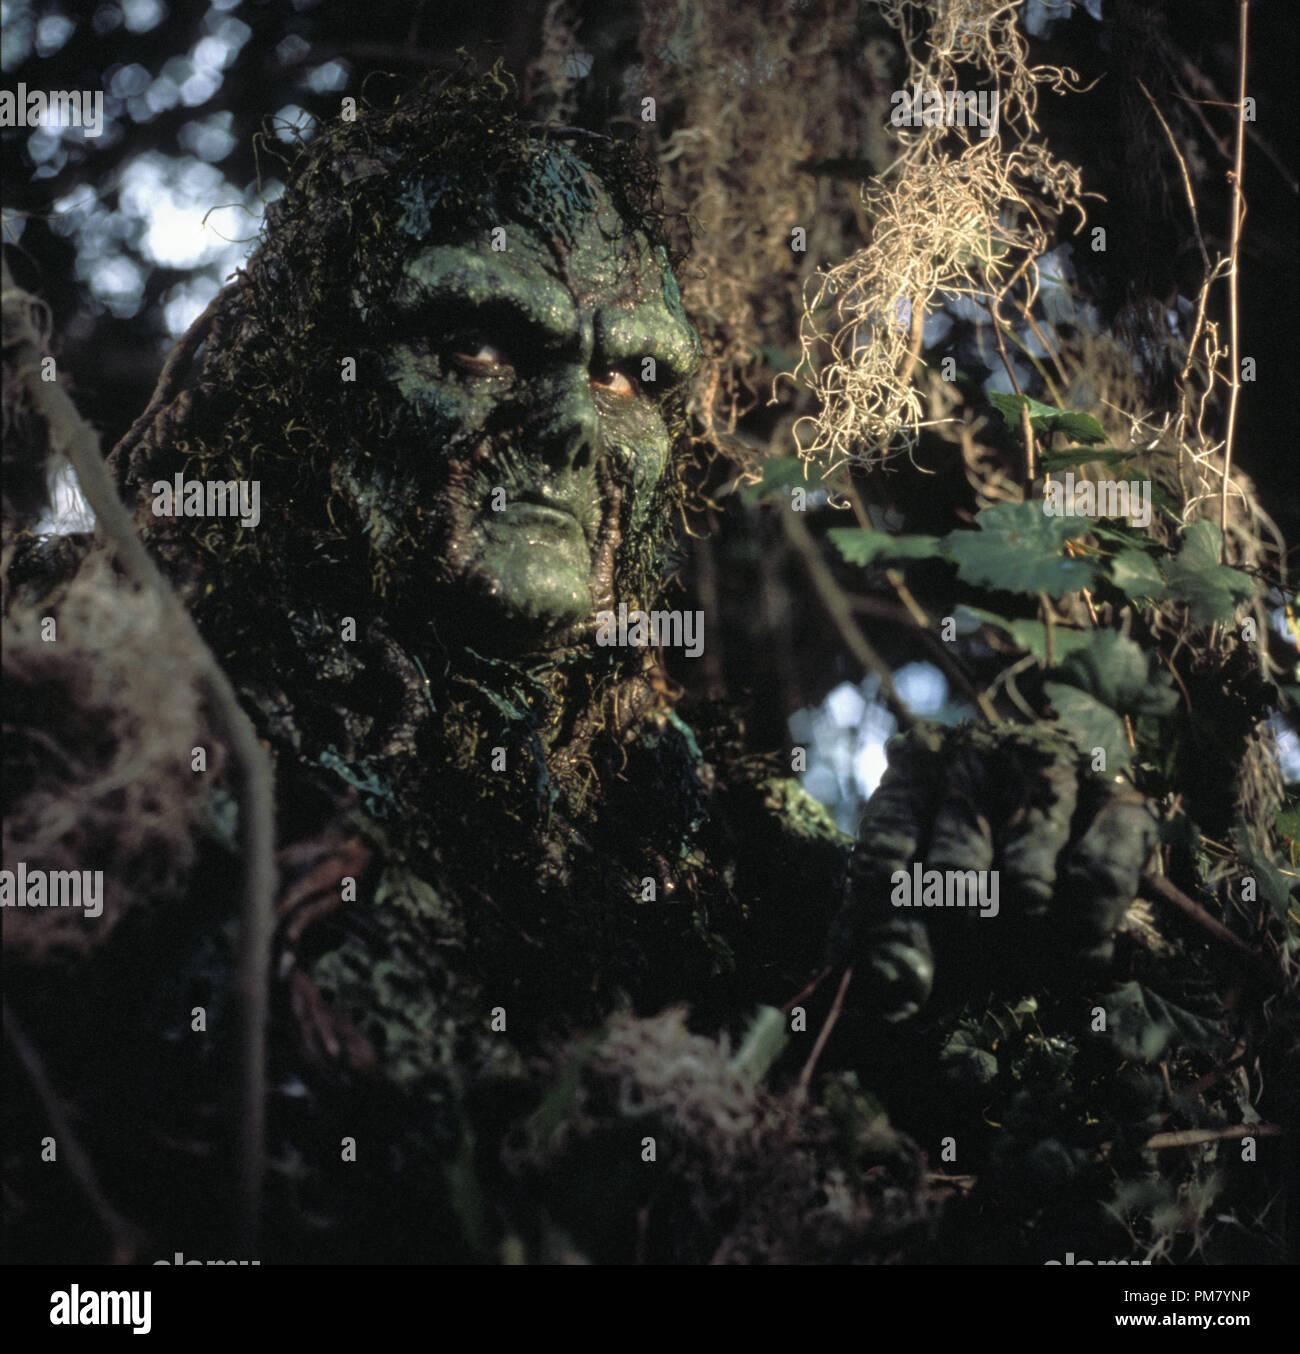 Swamp Thing Stock Photos & Swamp Thing Stock Images - Alamy